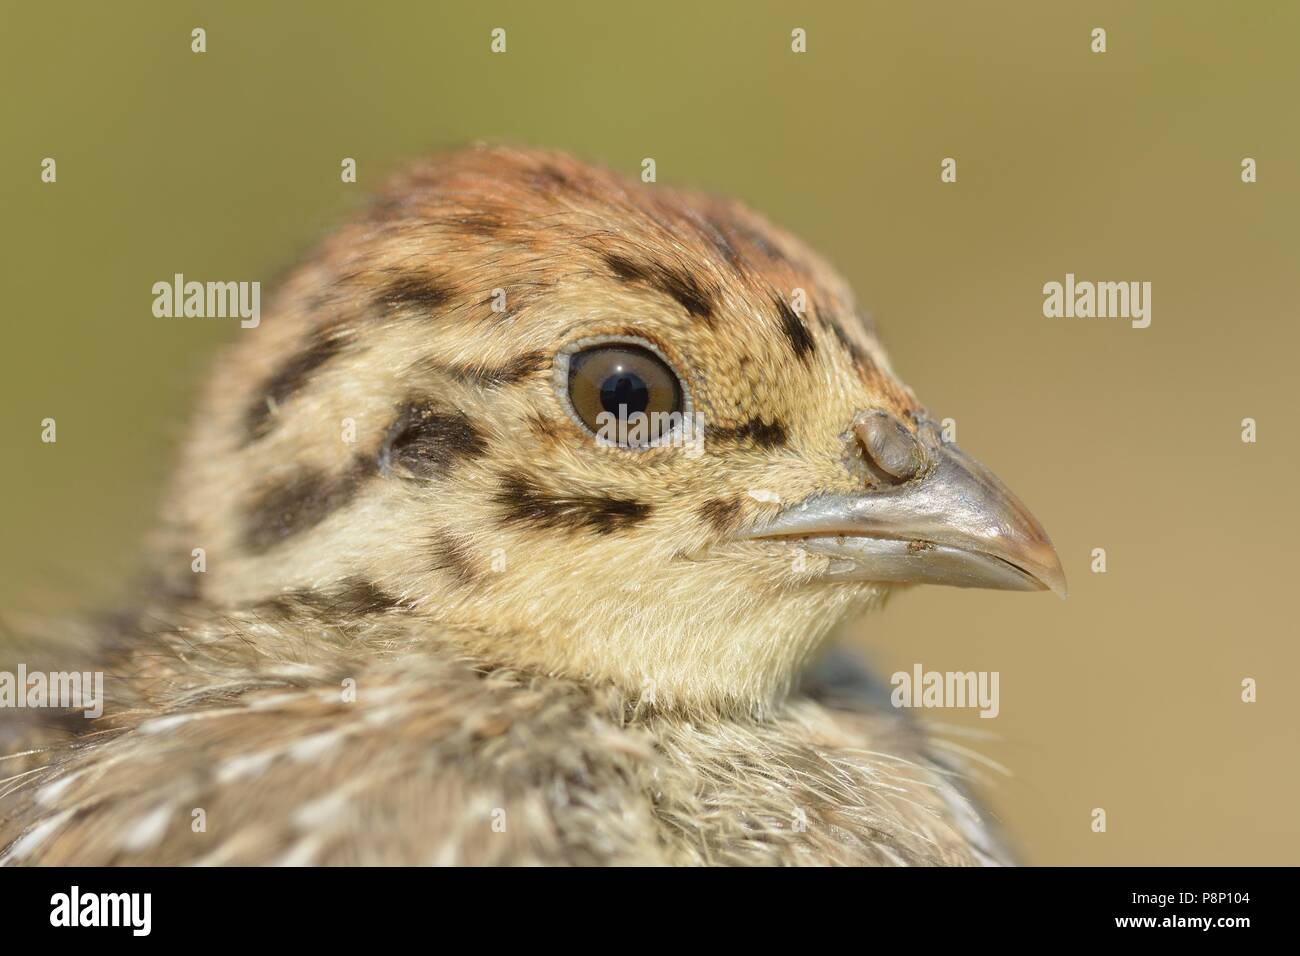 Chicken of Grey Partridge - Stock Image